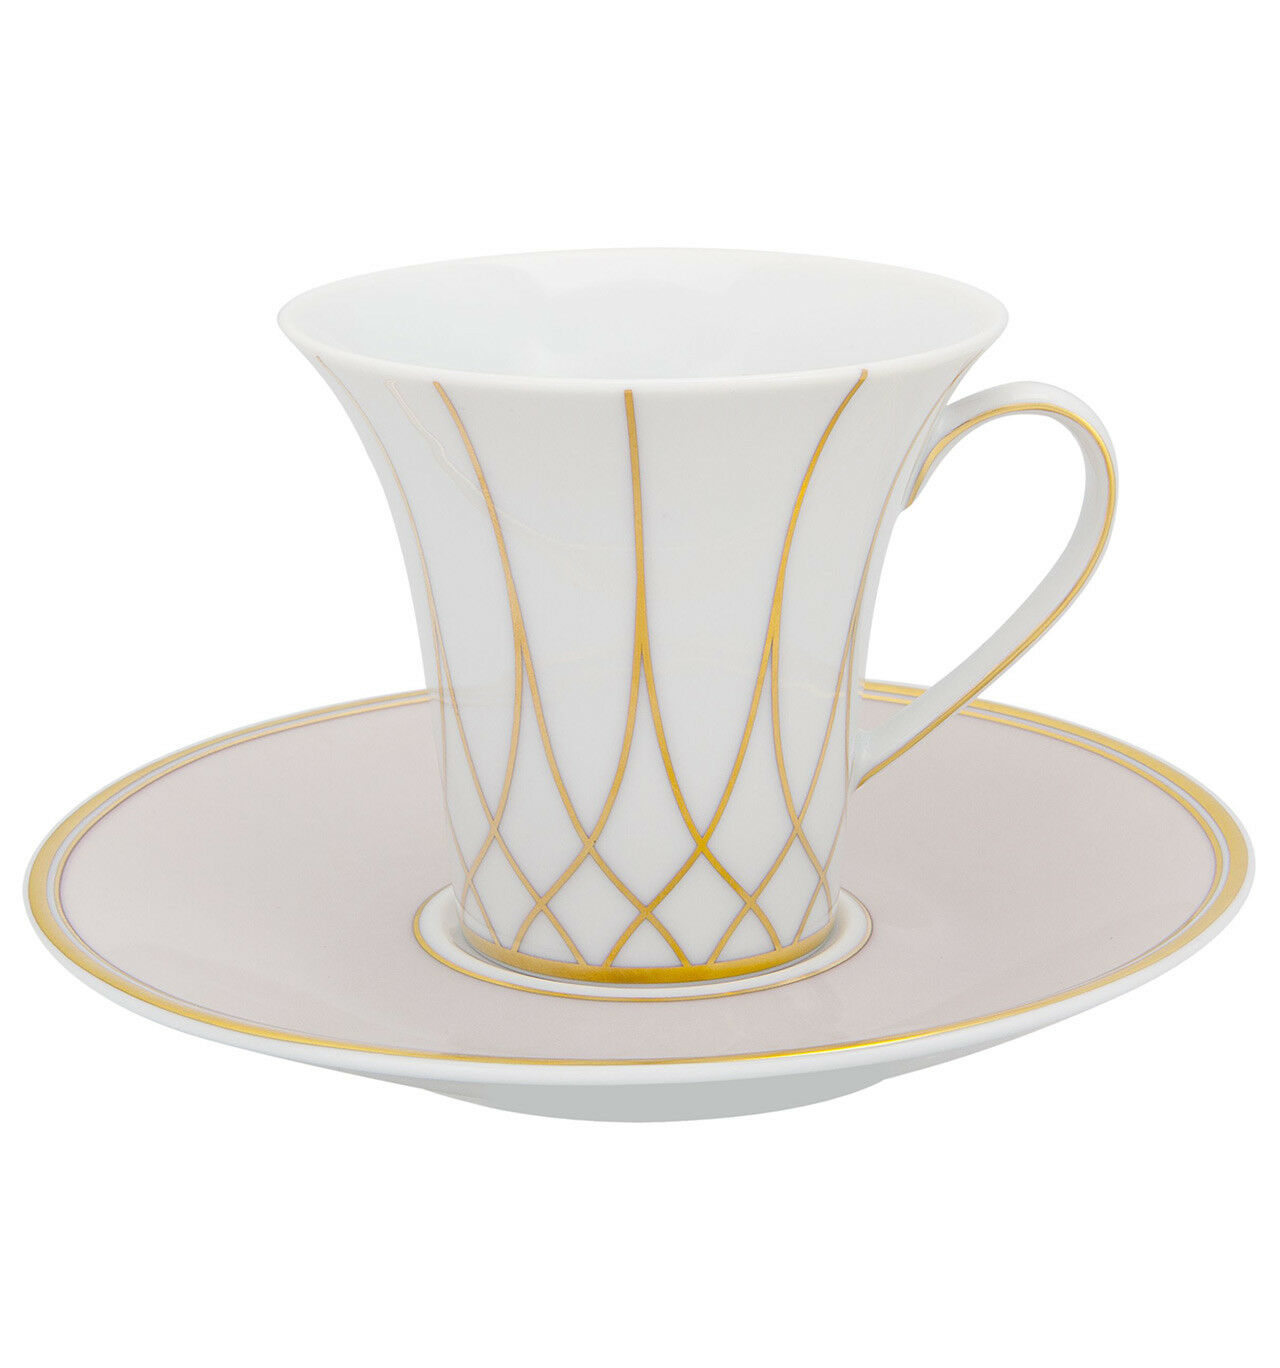 Vista Alegre Terrace Coffee cup and Saucer 13cl - Set of 8